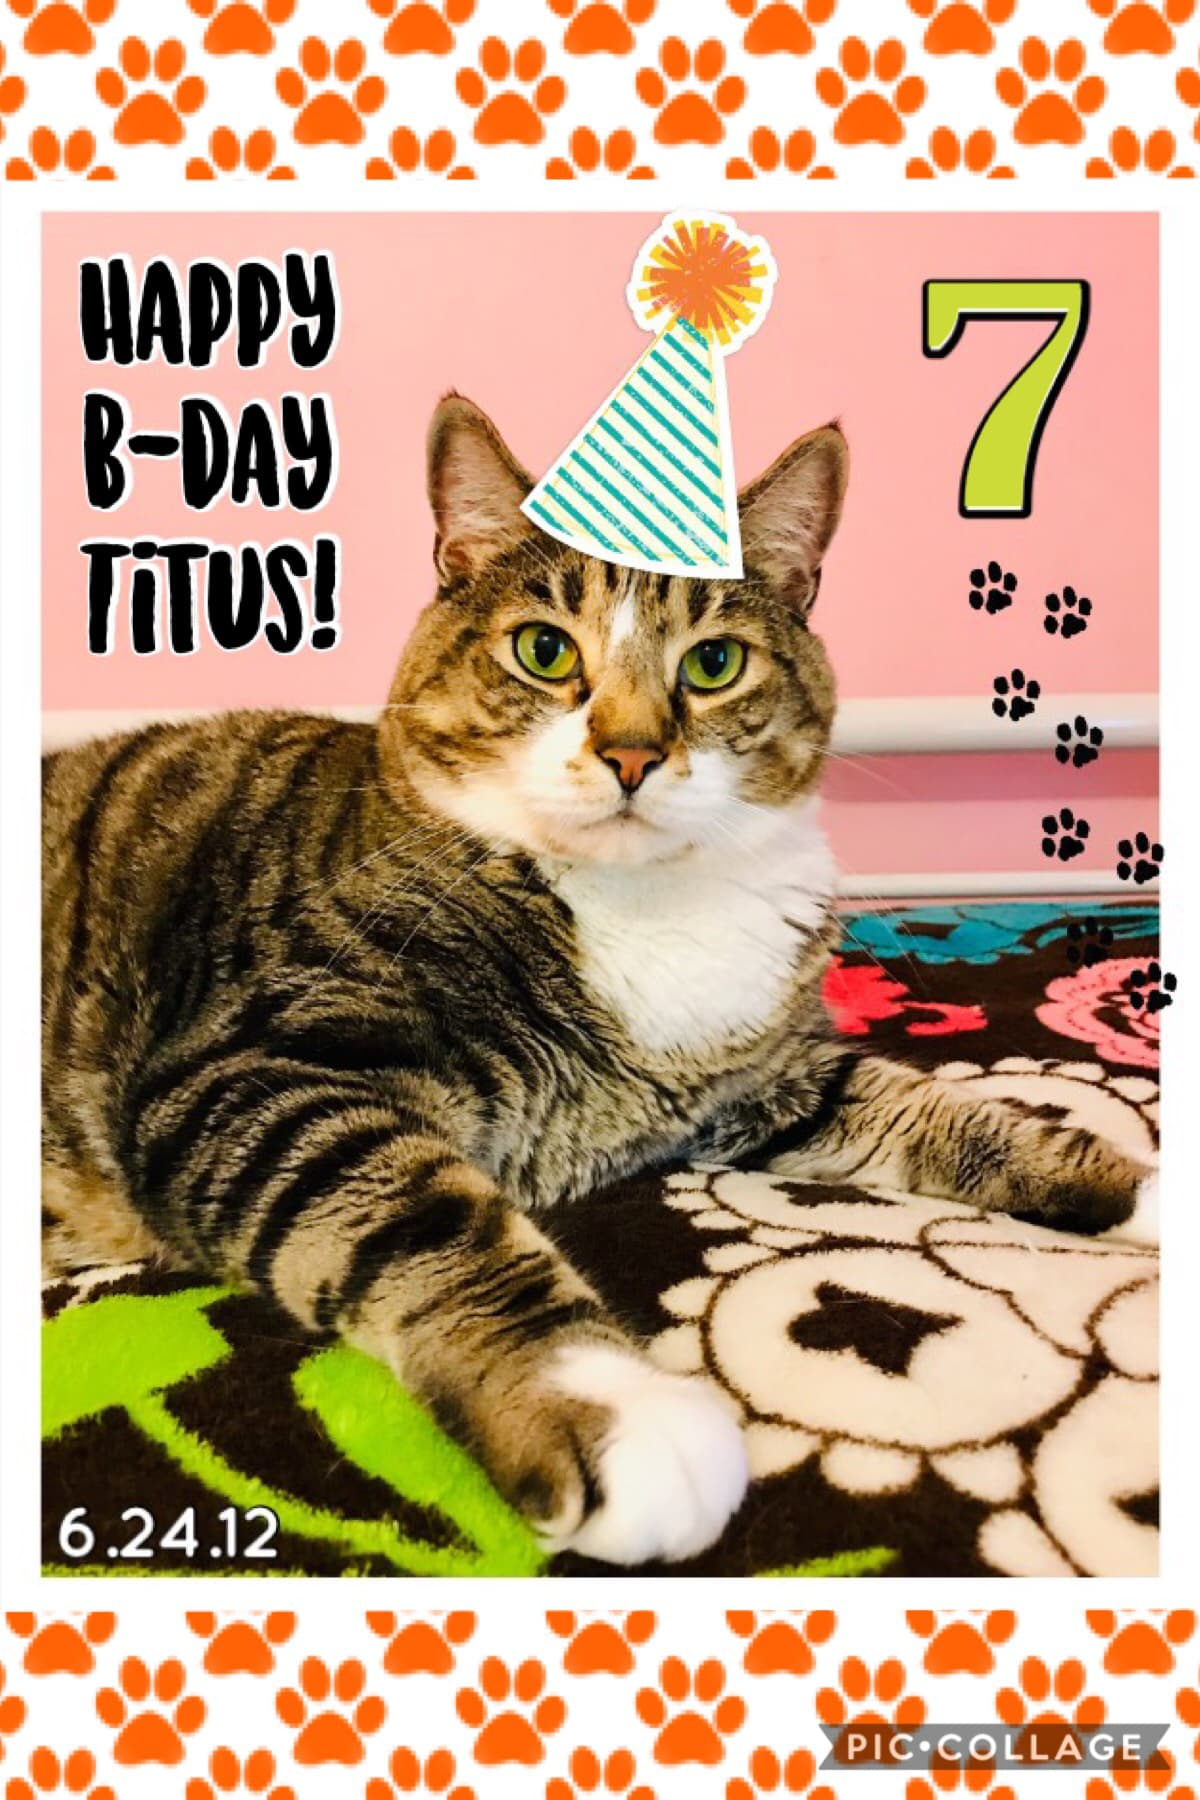 My cat's 7th birthday was on Monday! 🥳 🐾 7️⃣ 🐈 💚 🧶 🎂 (I made this then but had issues posting it. 😤 ) We've had him since he was born and he's the sweetest, also very overweight if you can't tell. 😂 📅 I couldn't ask for a better cat, I love him so much. 🥰